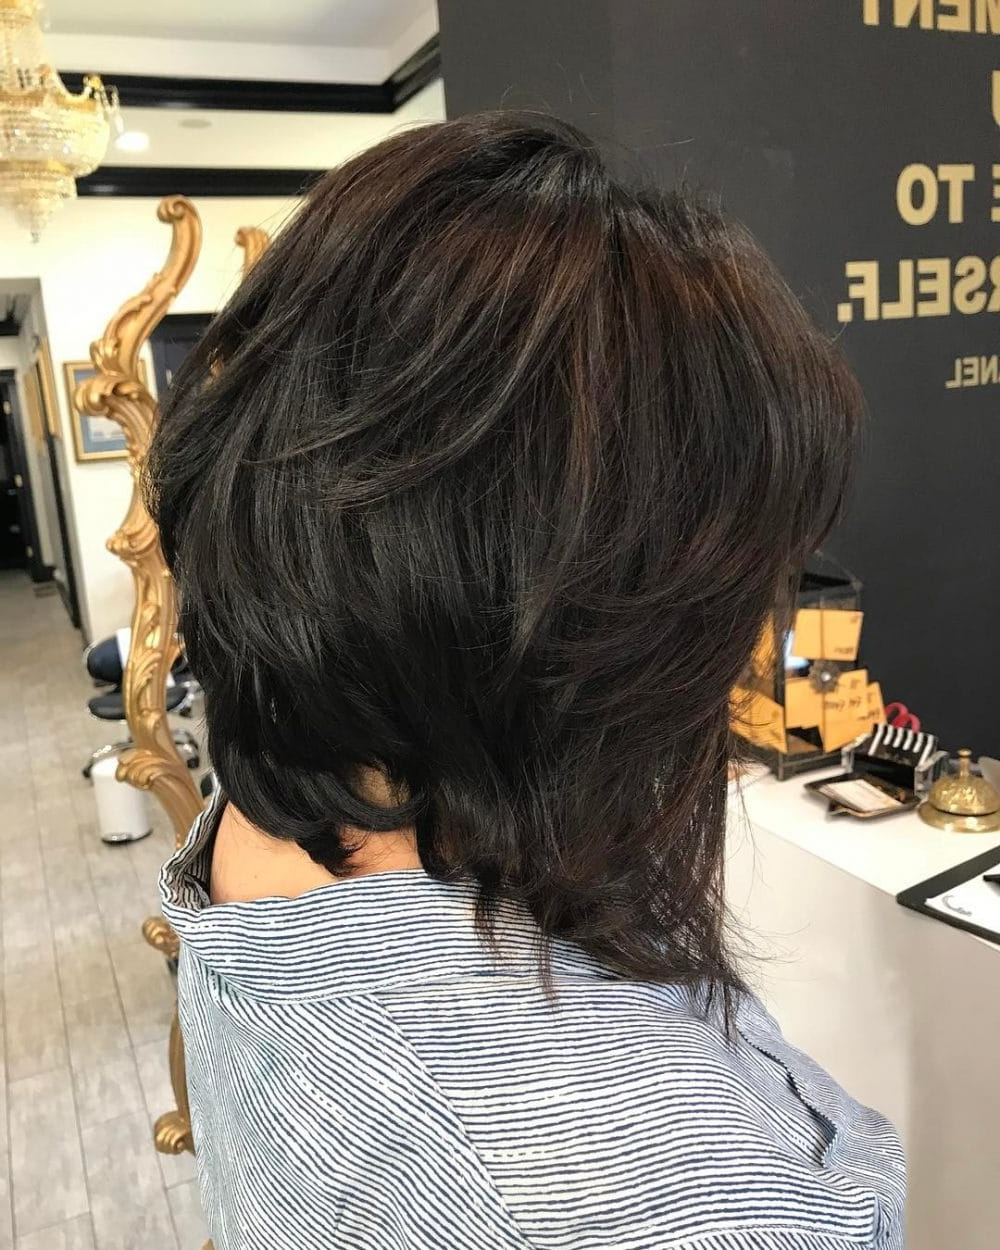 26 Modern Shag Haircuts To Try In 2019 For Disconnected Shaggy Brunette Bob Hairstyles (View 5 of 20)